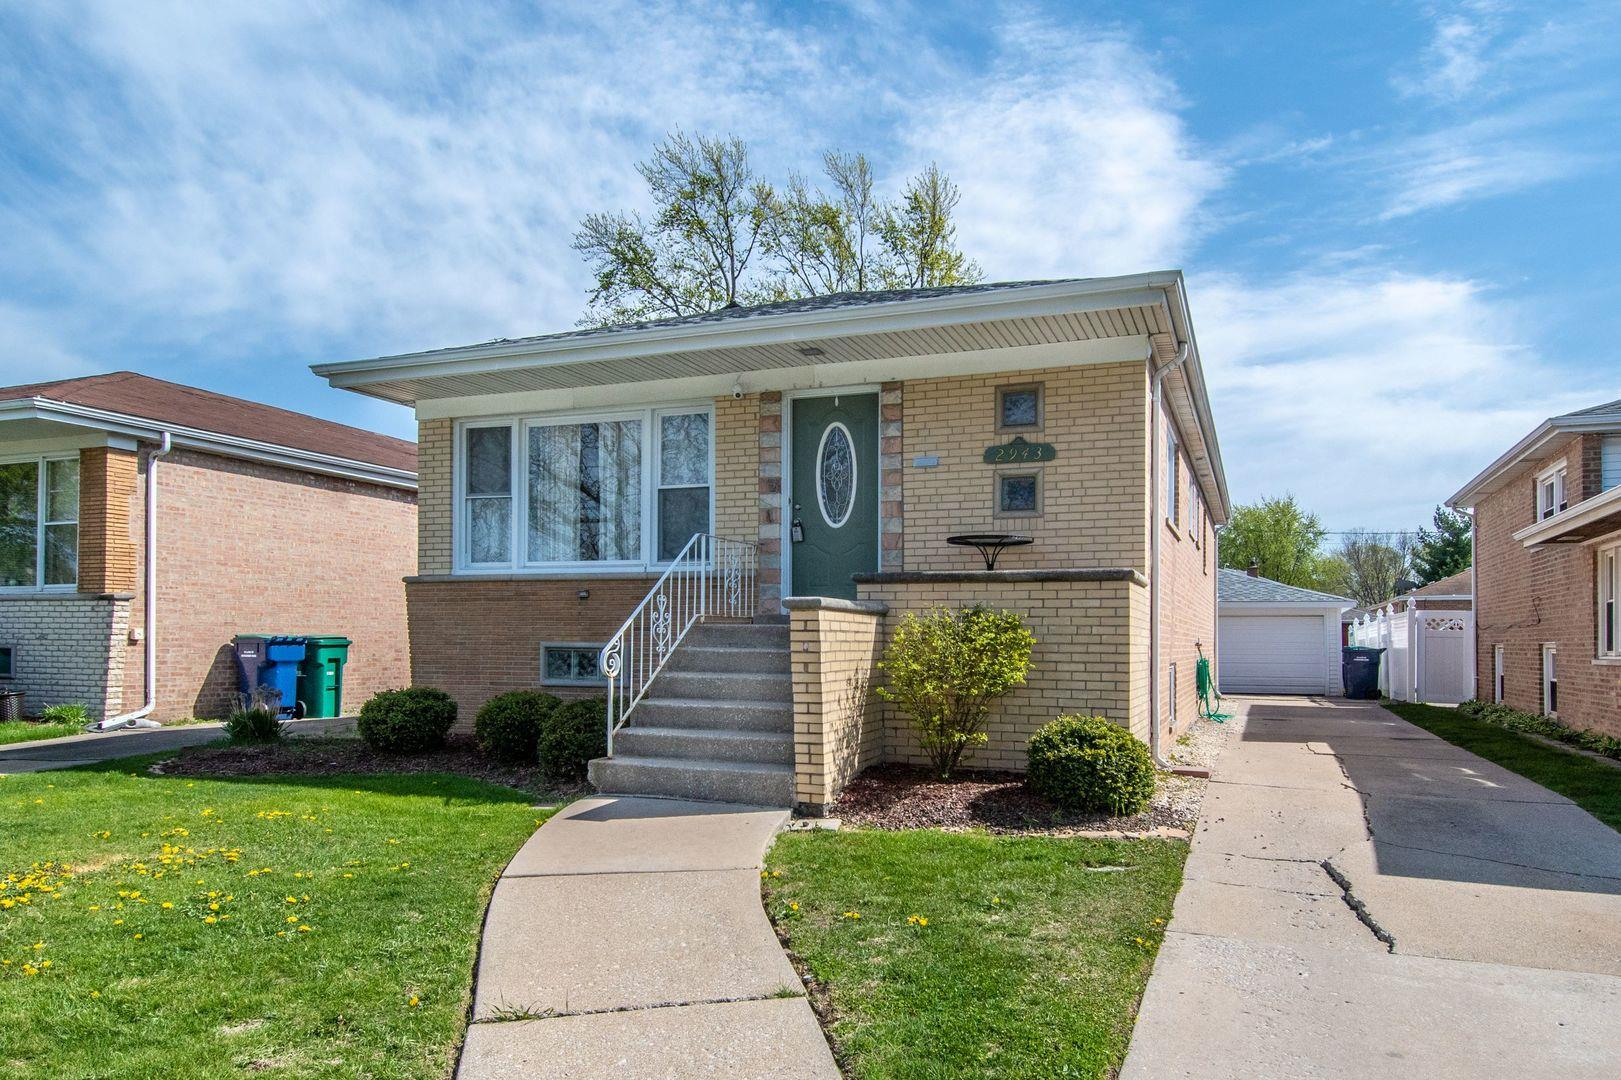 2943 W 100th Place, Evergreen Park, IL 60805 - #: 11054879